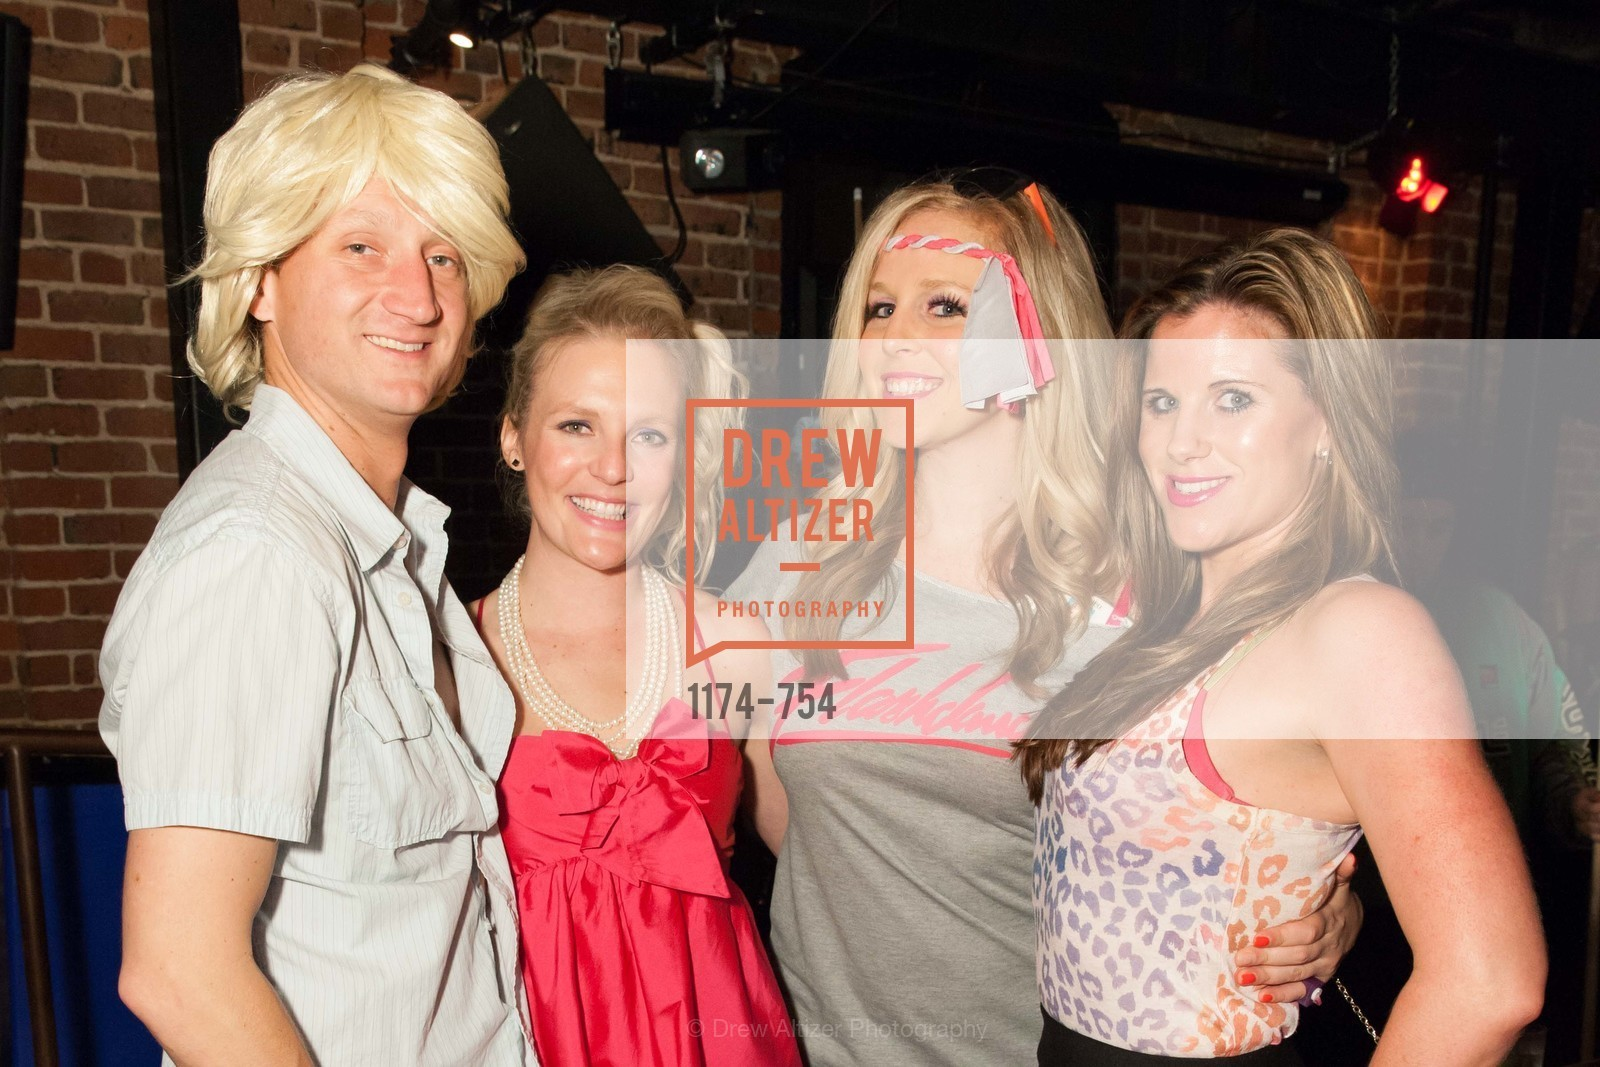 Cambria Steel, SPINSTERS OF SAN FRANCISCO Party Like It's 1985 Charity Party, US, May 29th, 2015,Drew Altizer, Drew Altizer Photography, full-service agency, private events, San Francisco photographer, photographer california